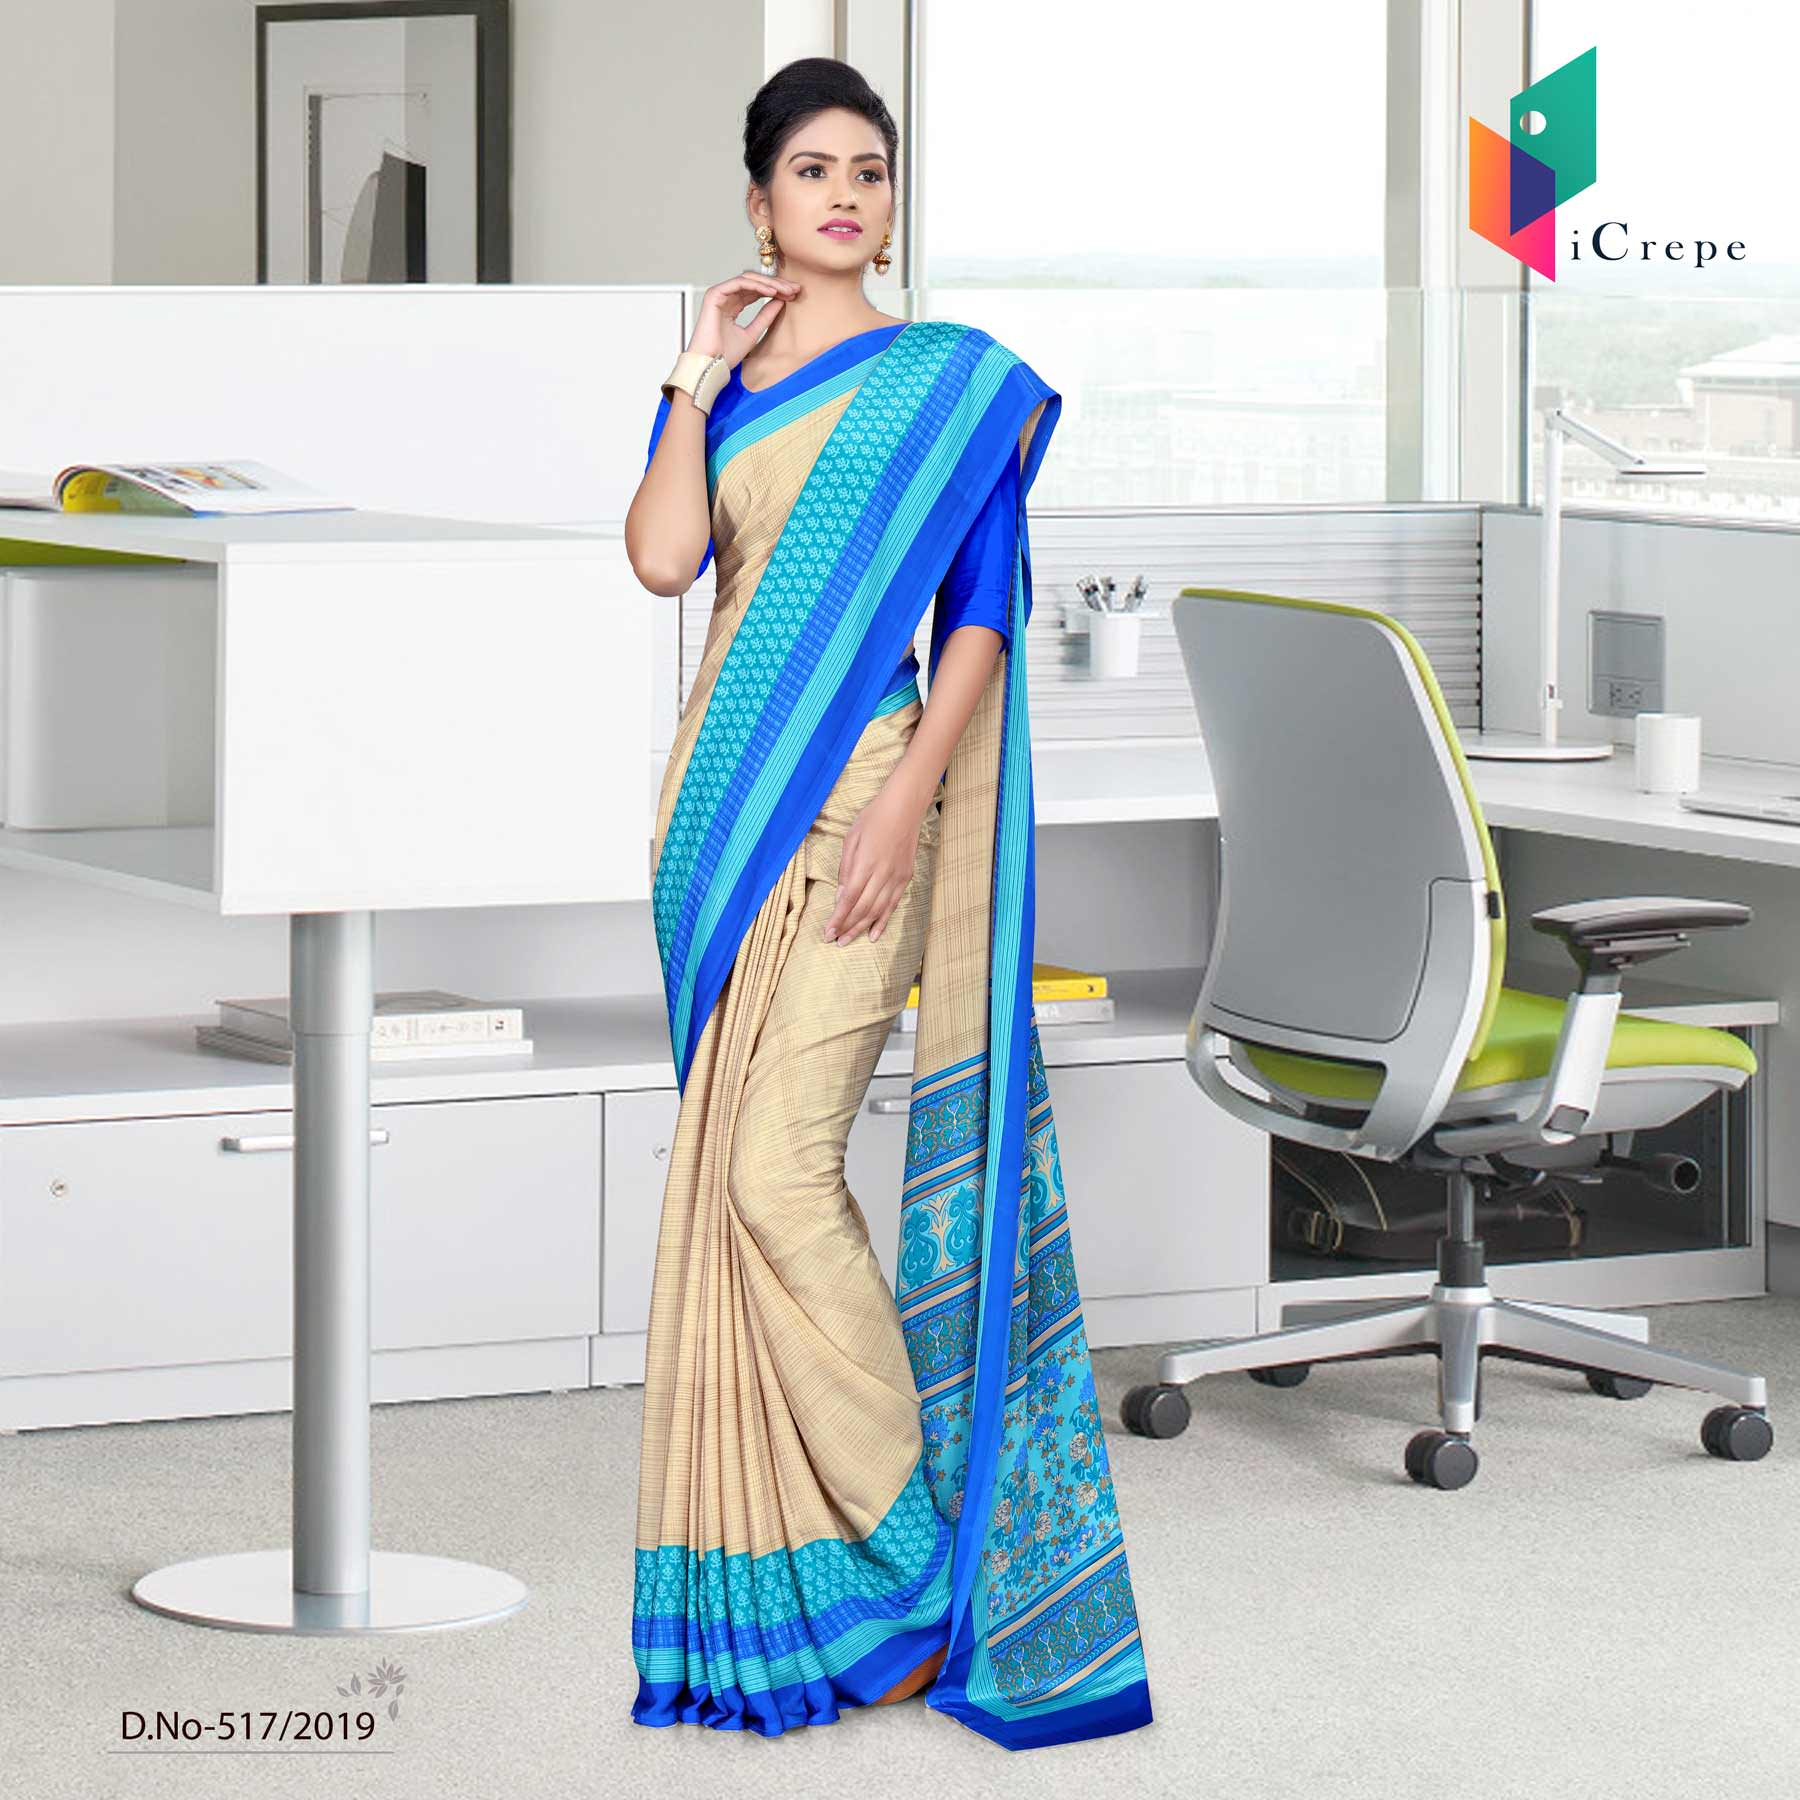 Brown and blue italian crepe silk staff uniform sarees